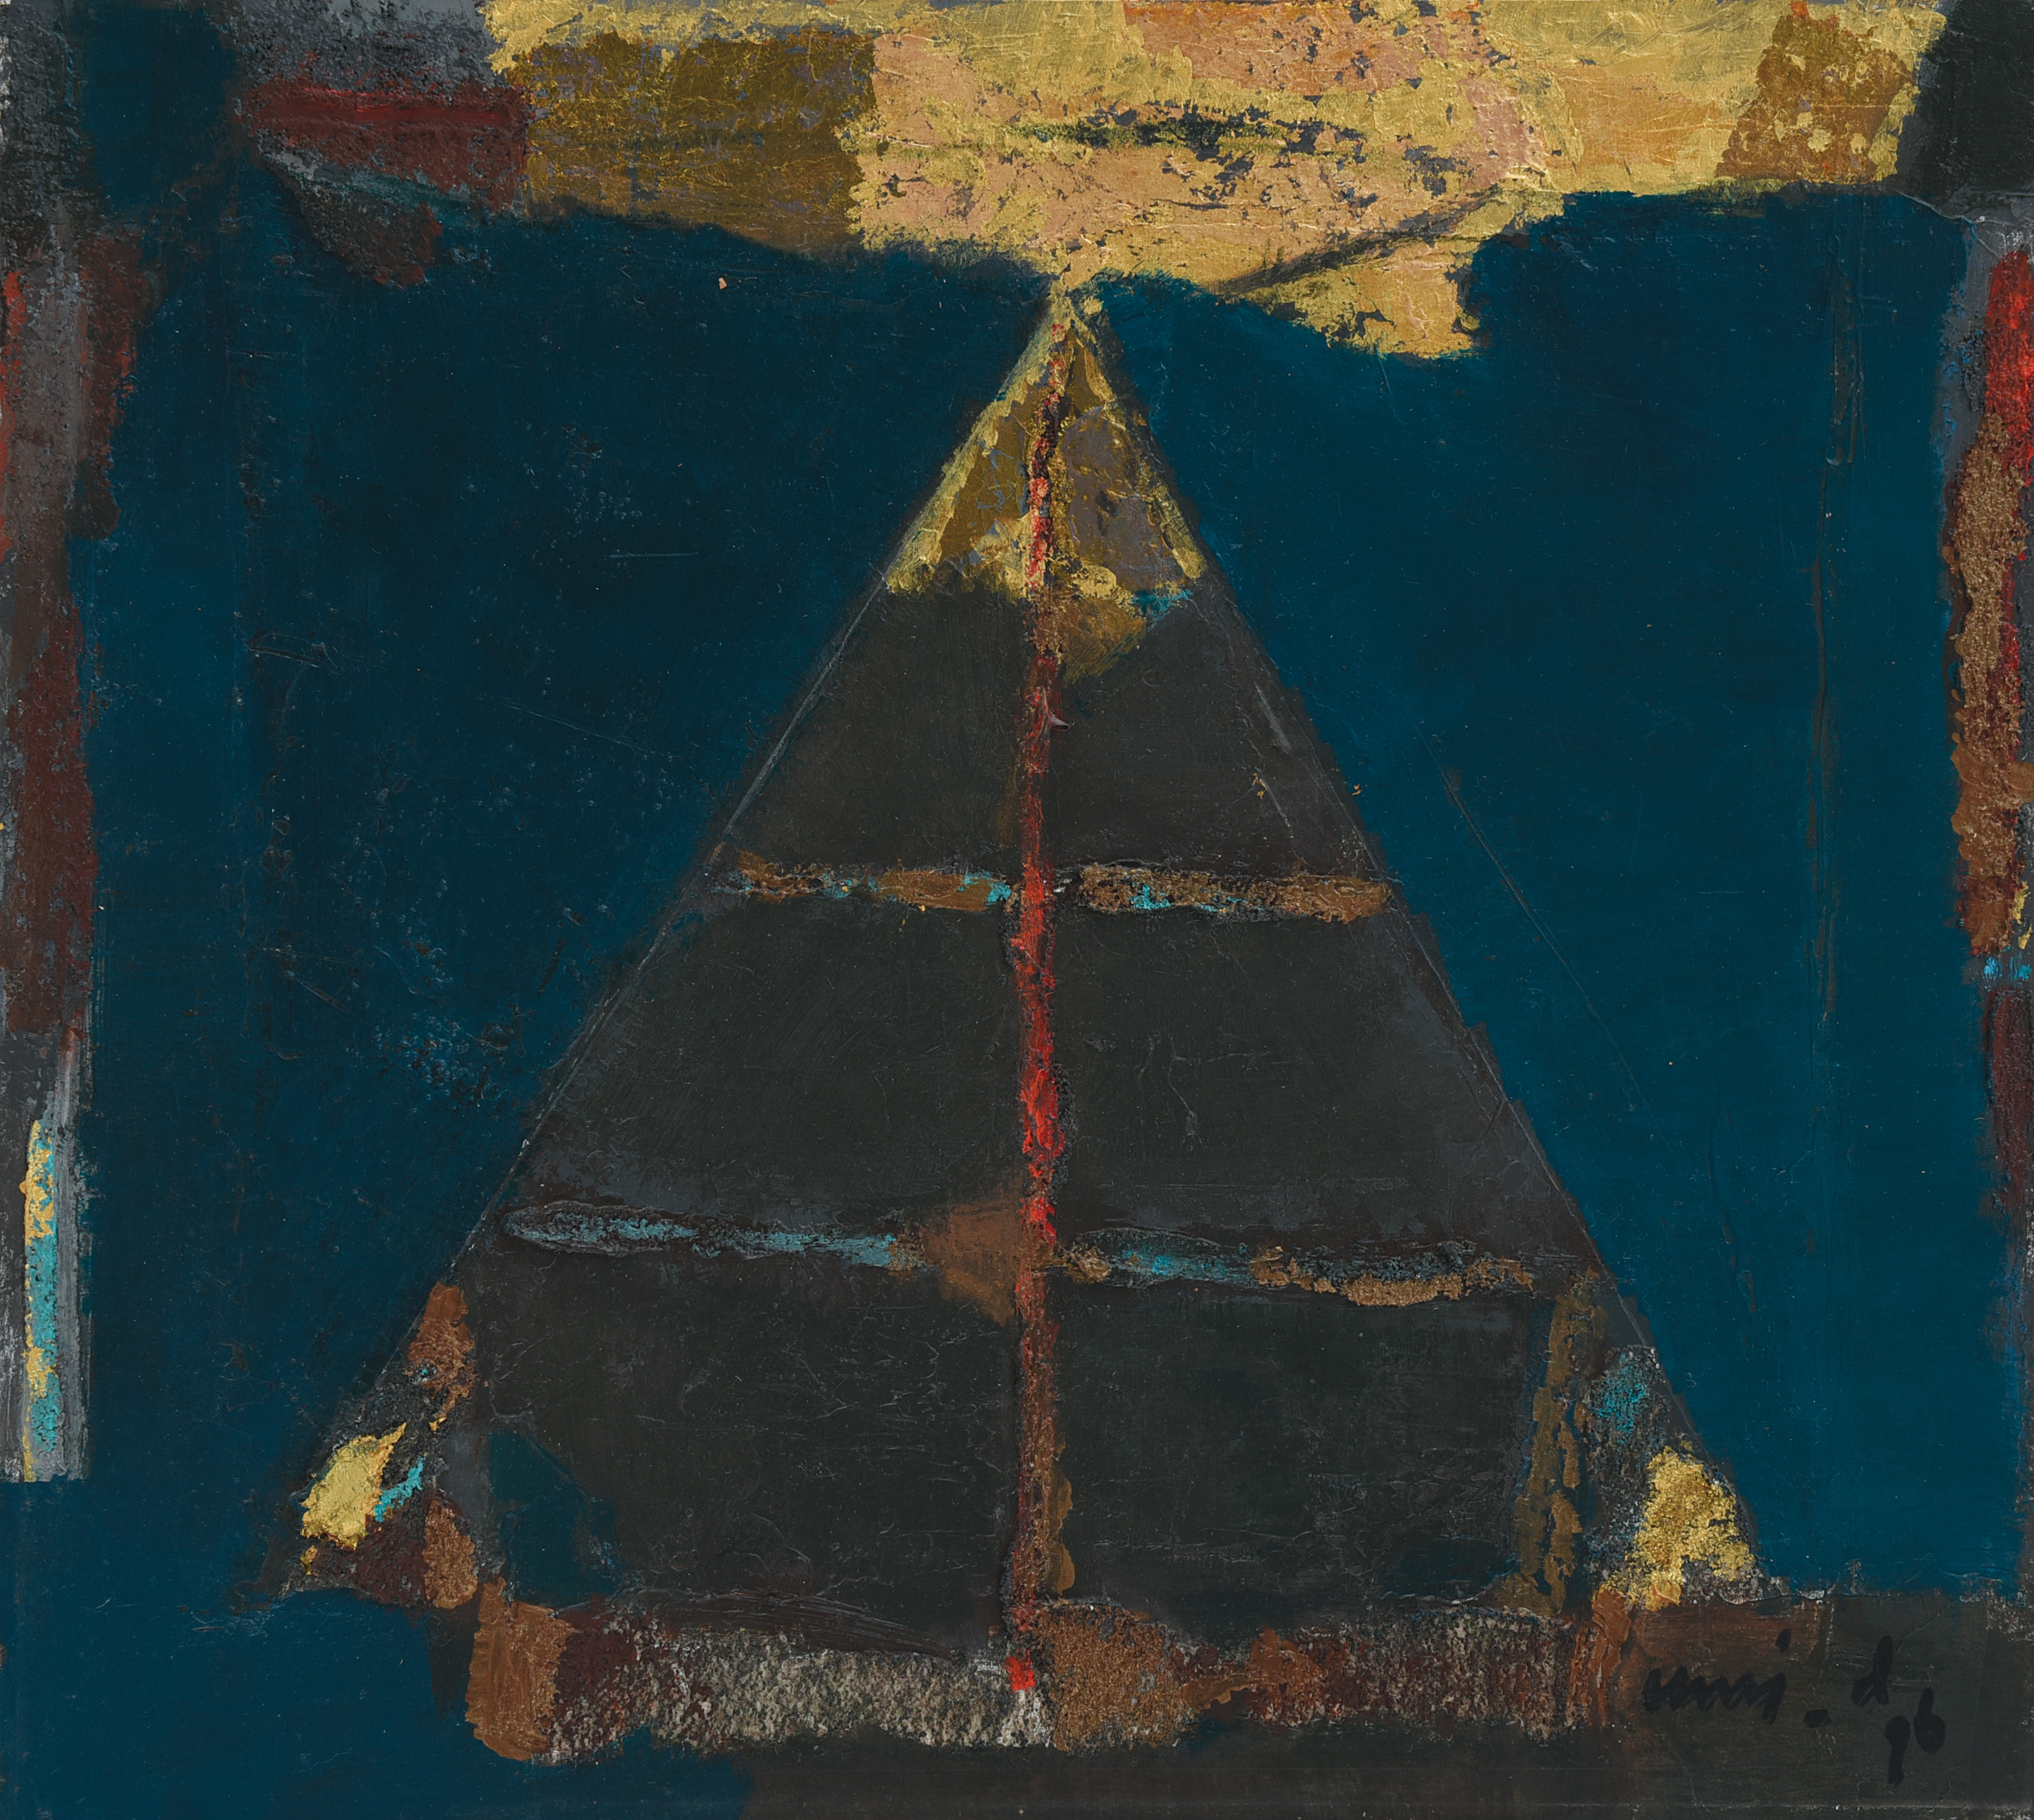 Umi Dachalan, Contemplation, oil and mixed media on paper mounted on board, 36 x 40 cm, 1996.jpg